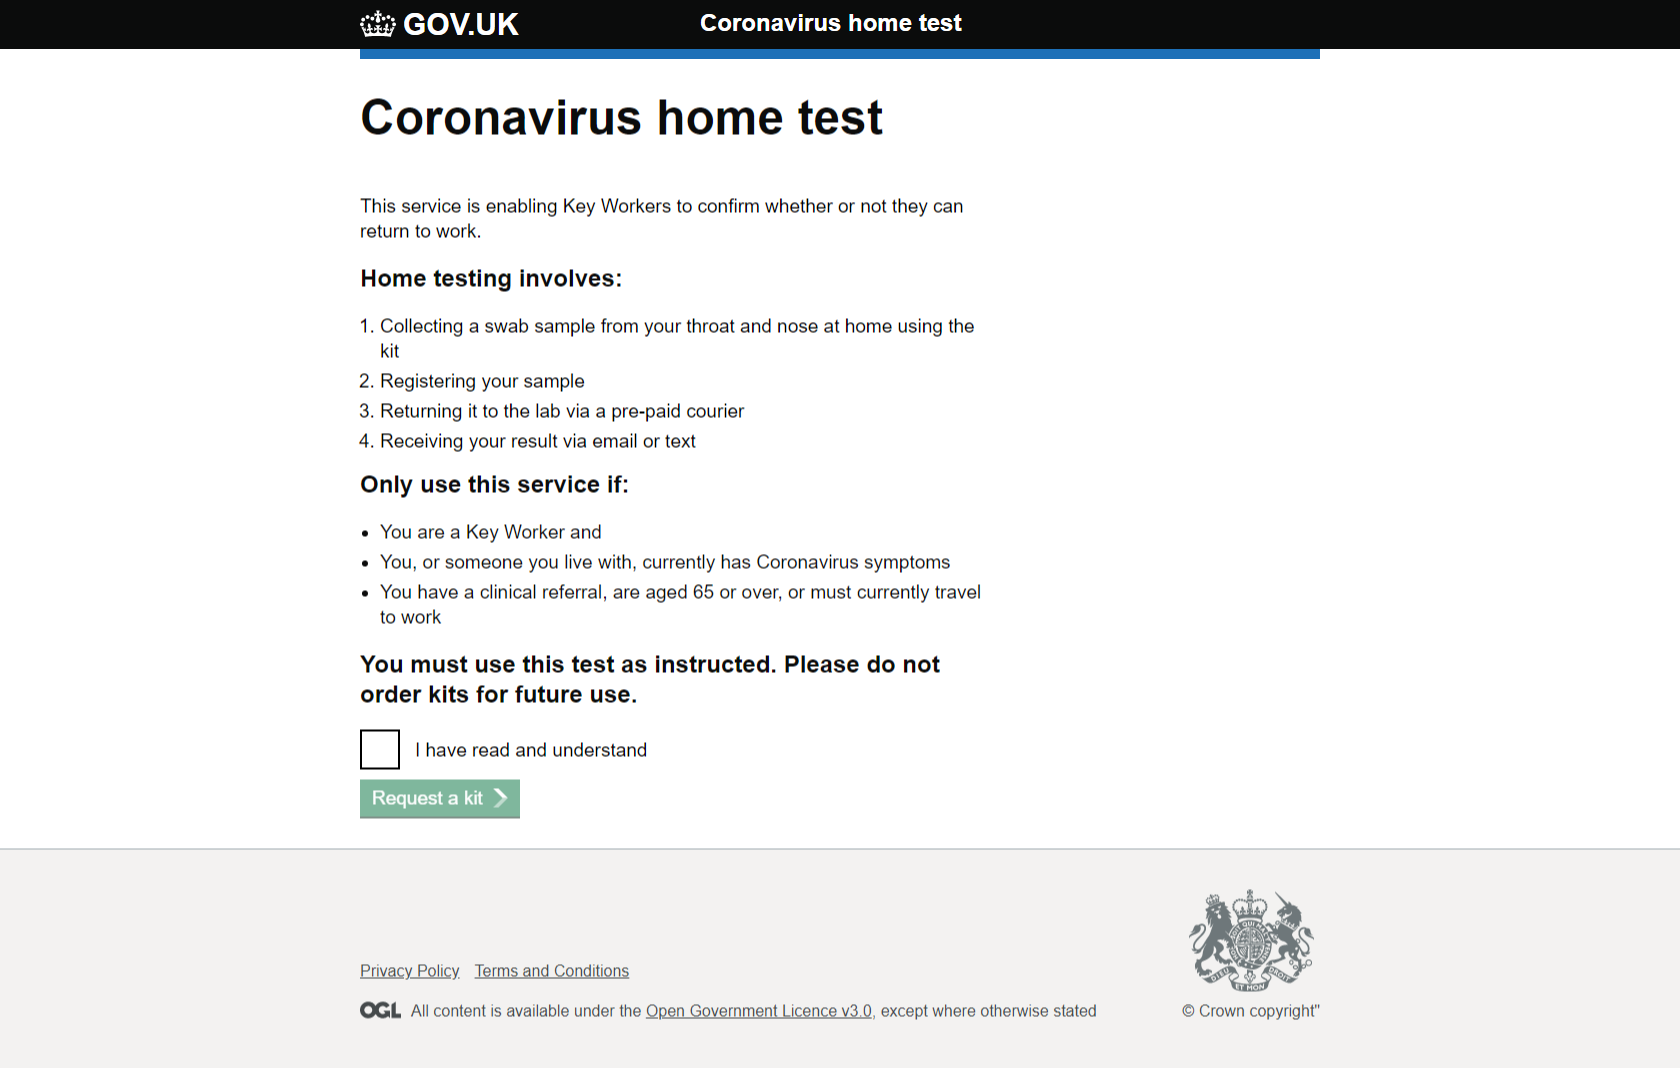 COVID-19 home test ordering service